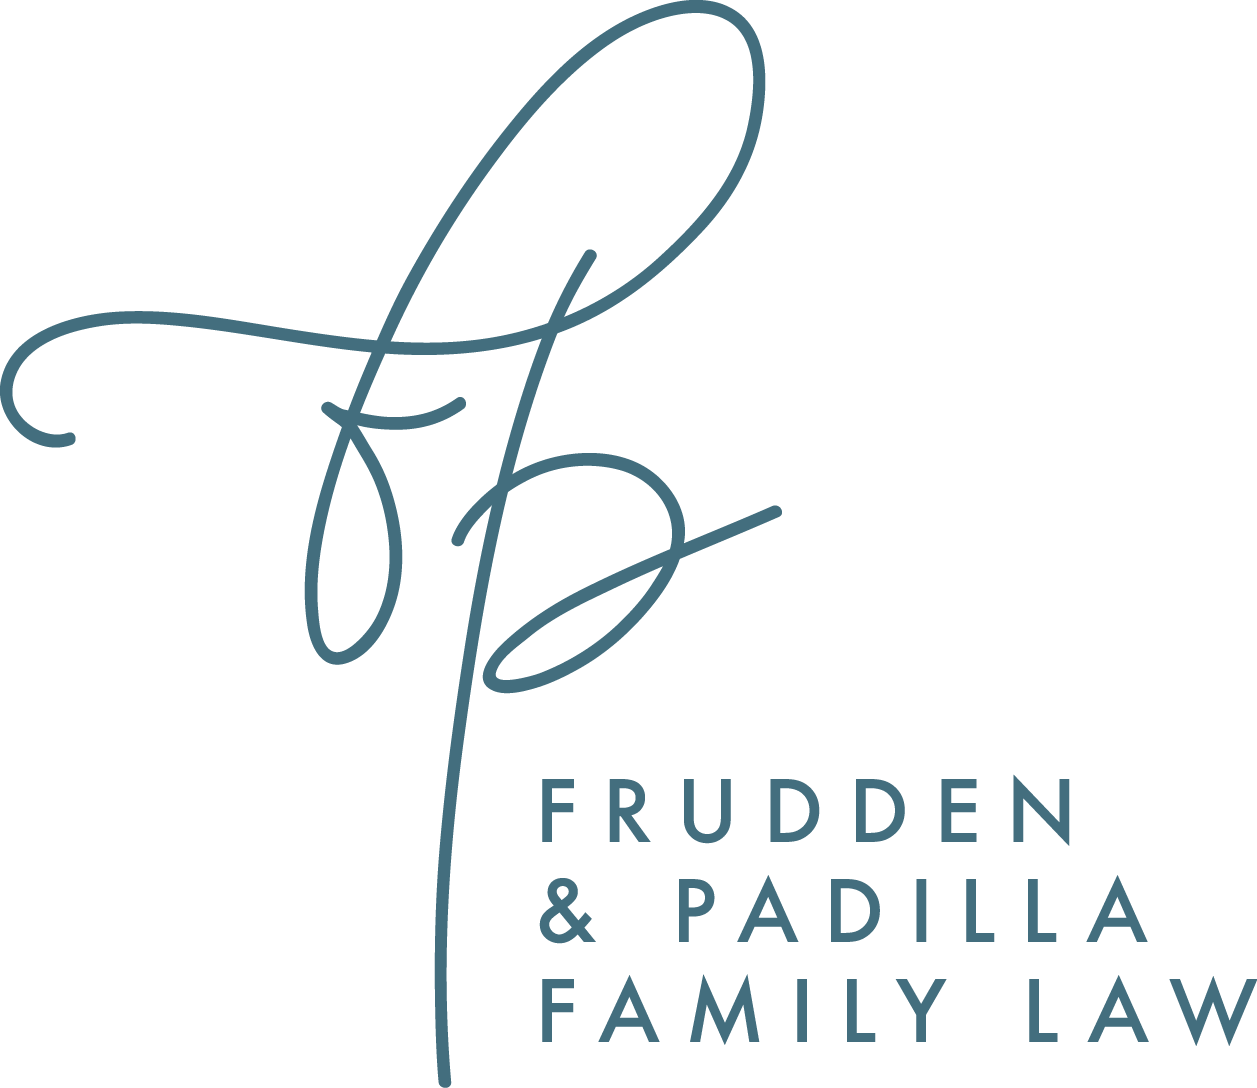 Frudden & Padilla Family Law | Compassionate Legal Solutions, Oakland and San Francisco Bay Area